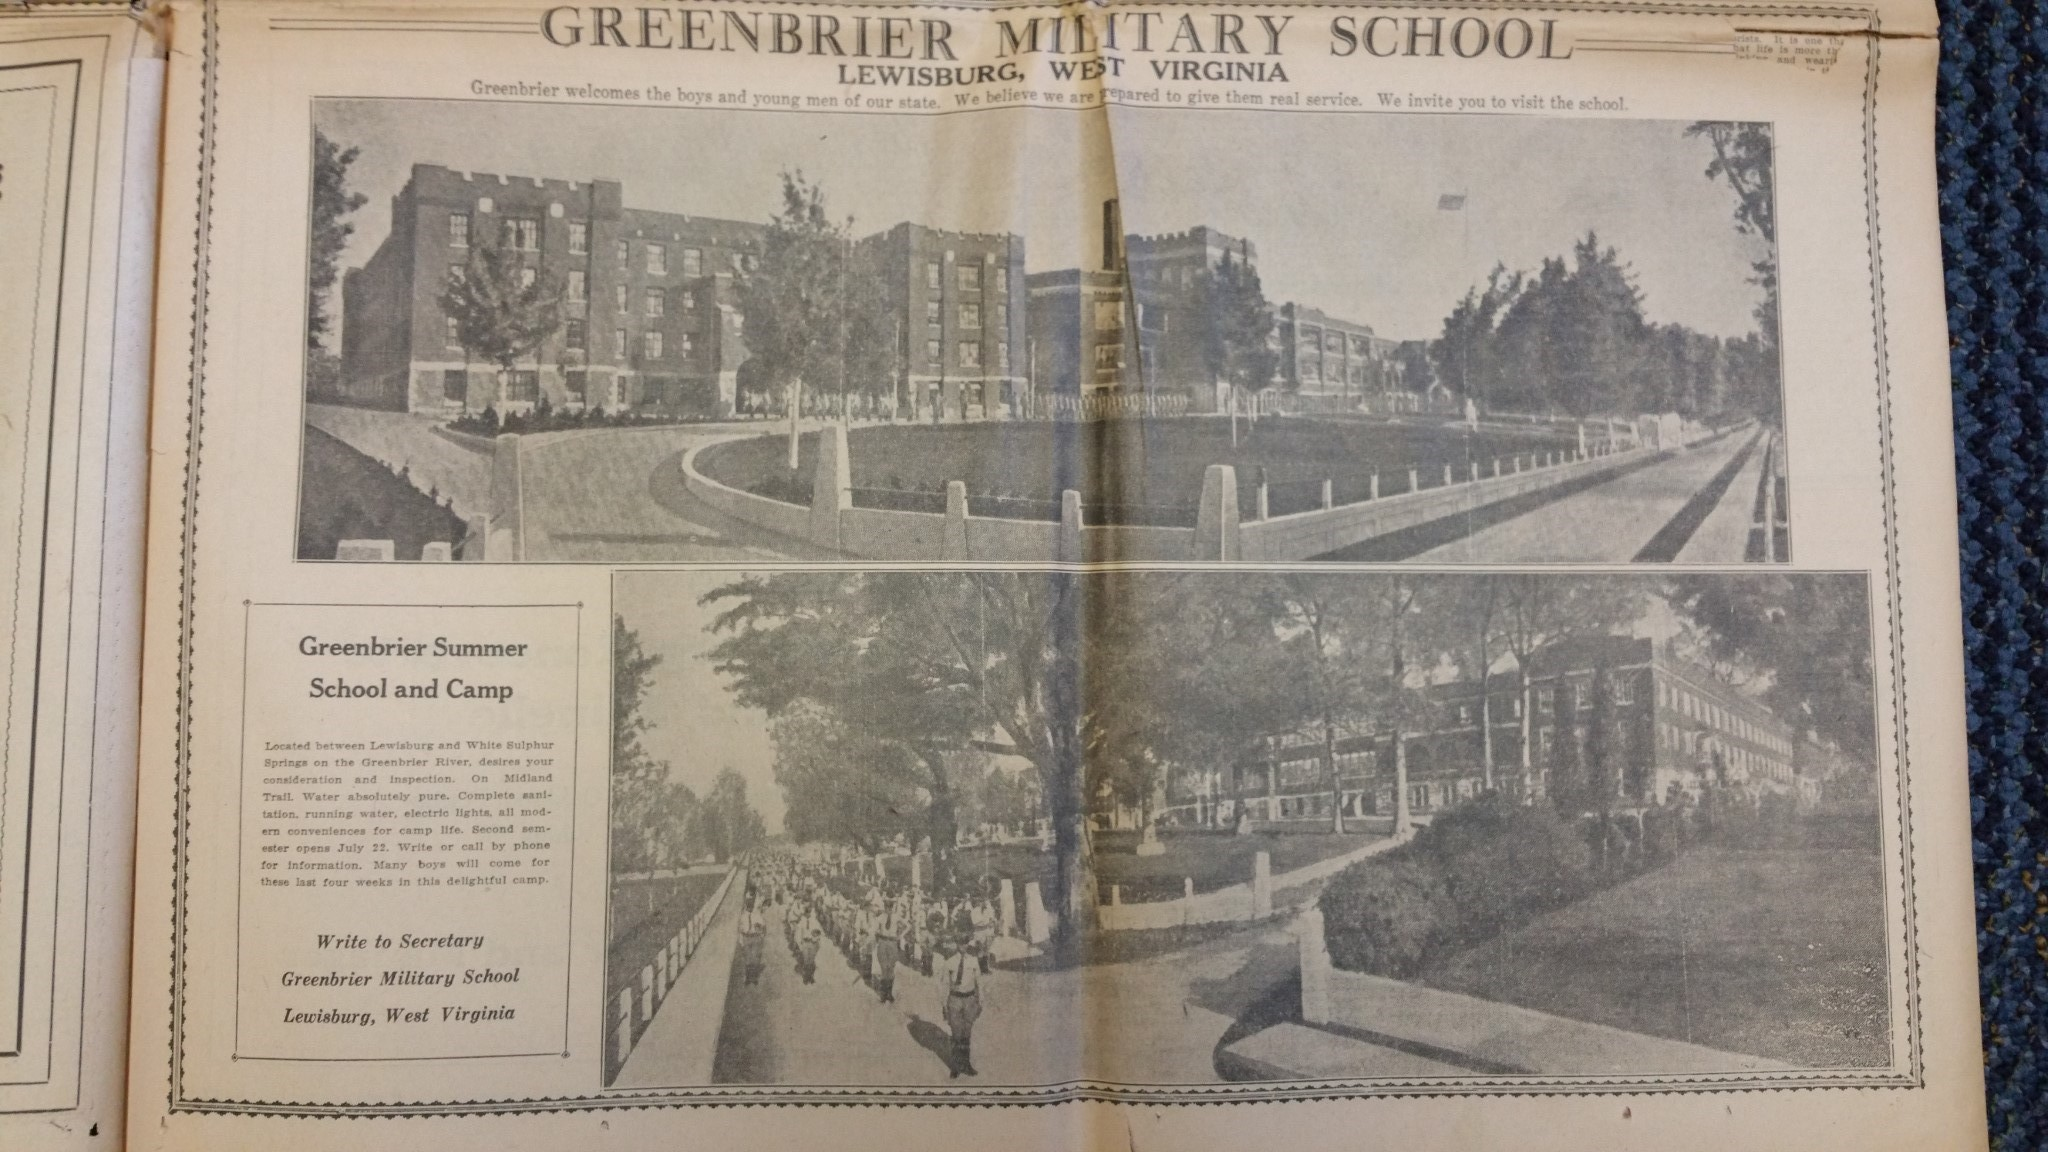 Photo of Greenbrier Military School found in newspaper located in Marshall University Special Collections vertical files.